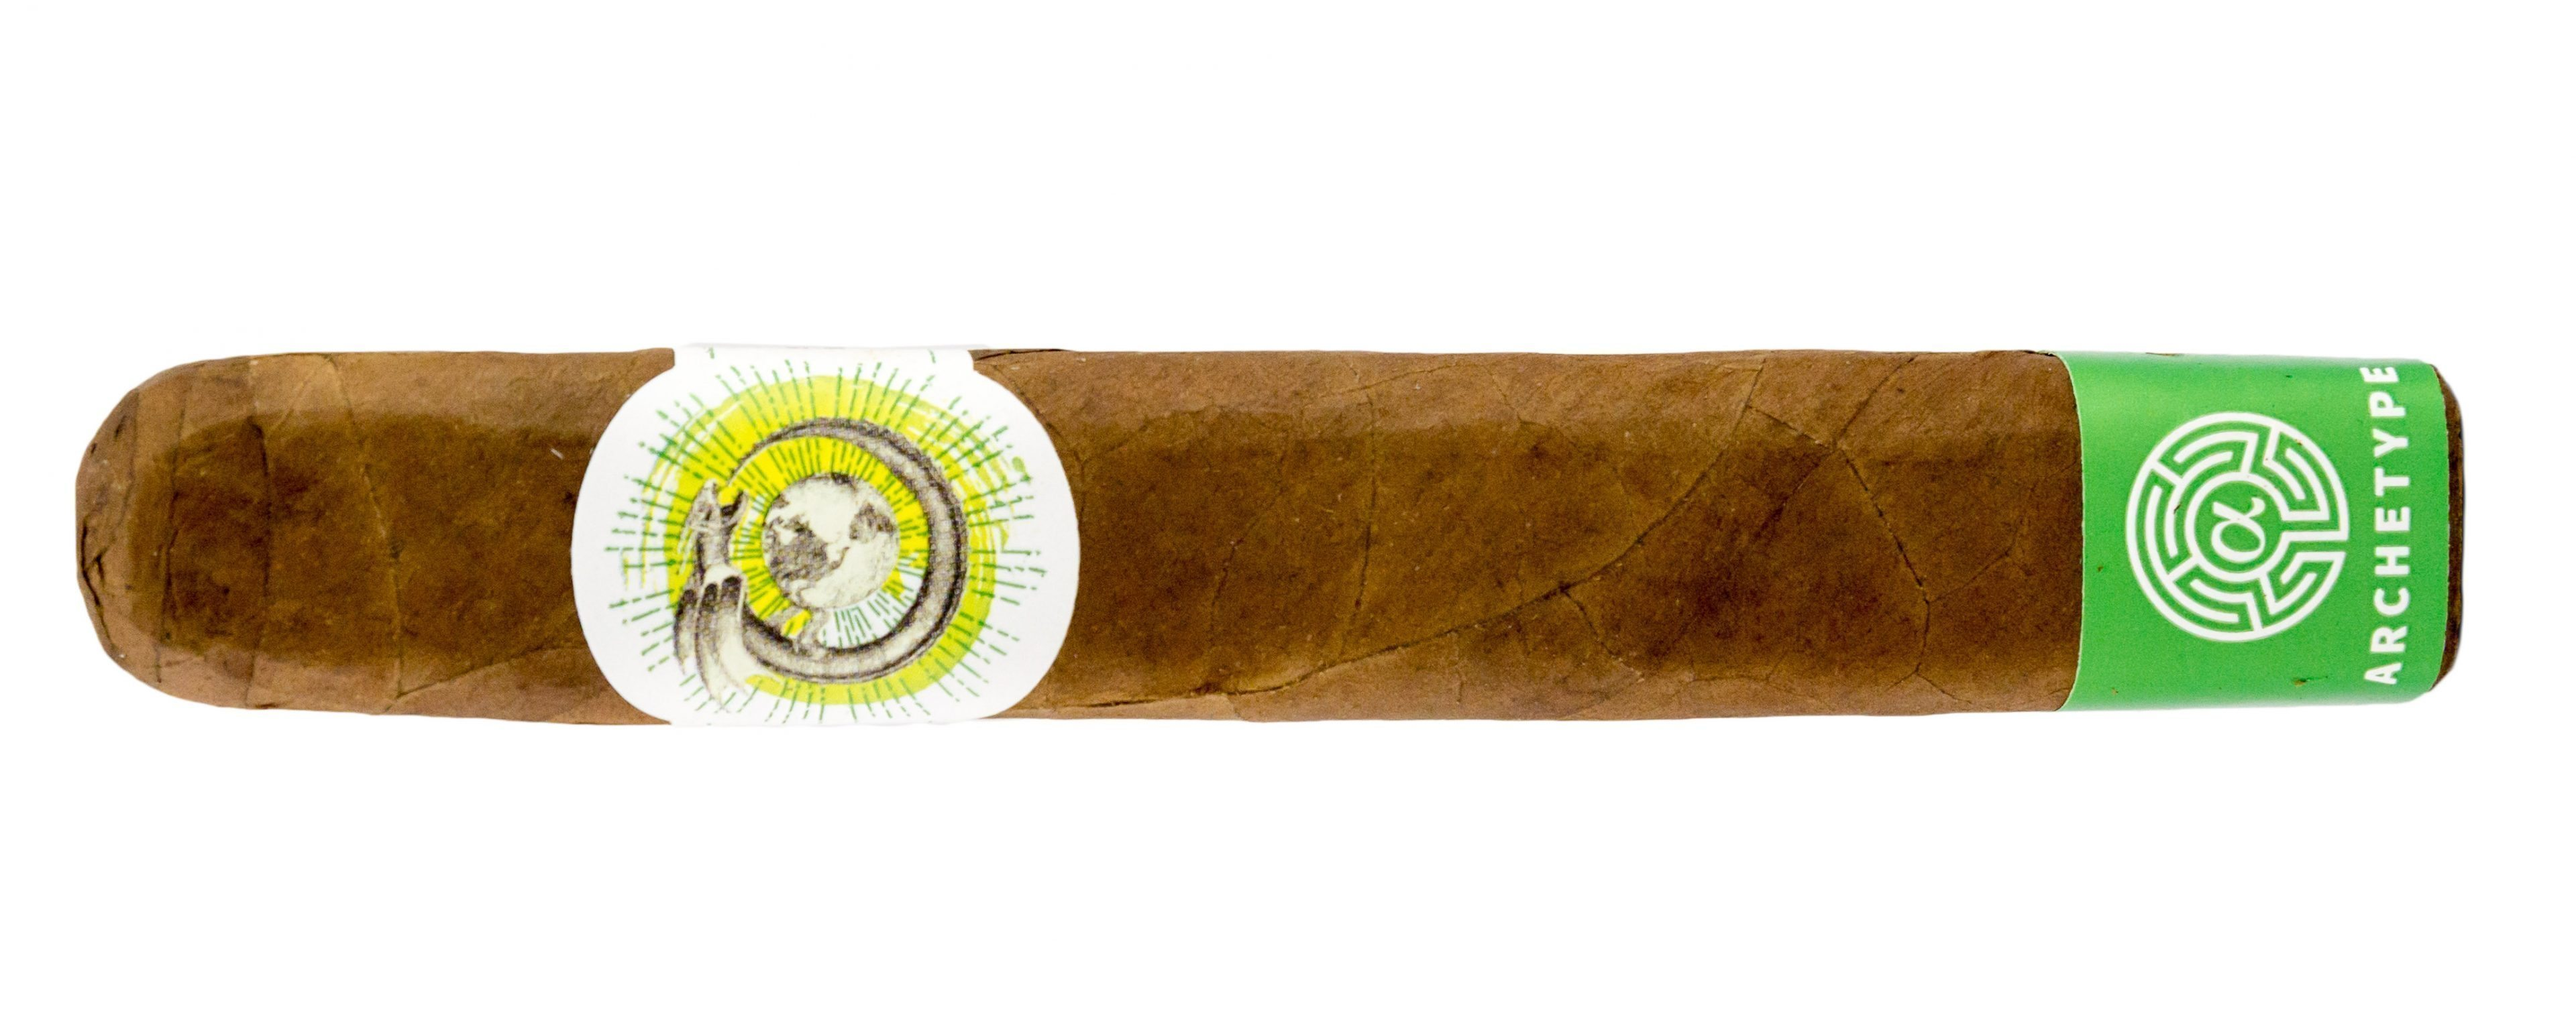 Blind Cigar Review: Ventura | Archetype Strange Passage Robusto